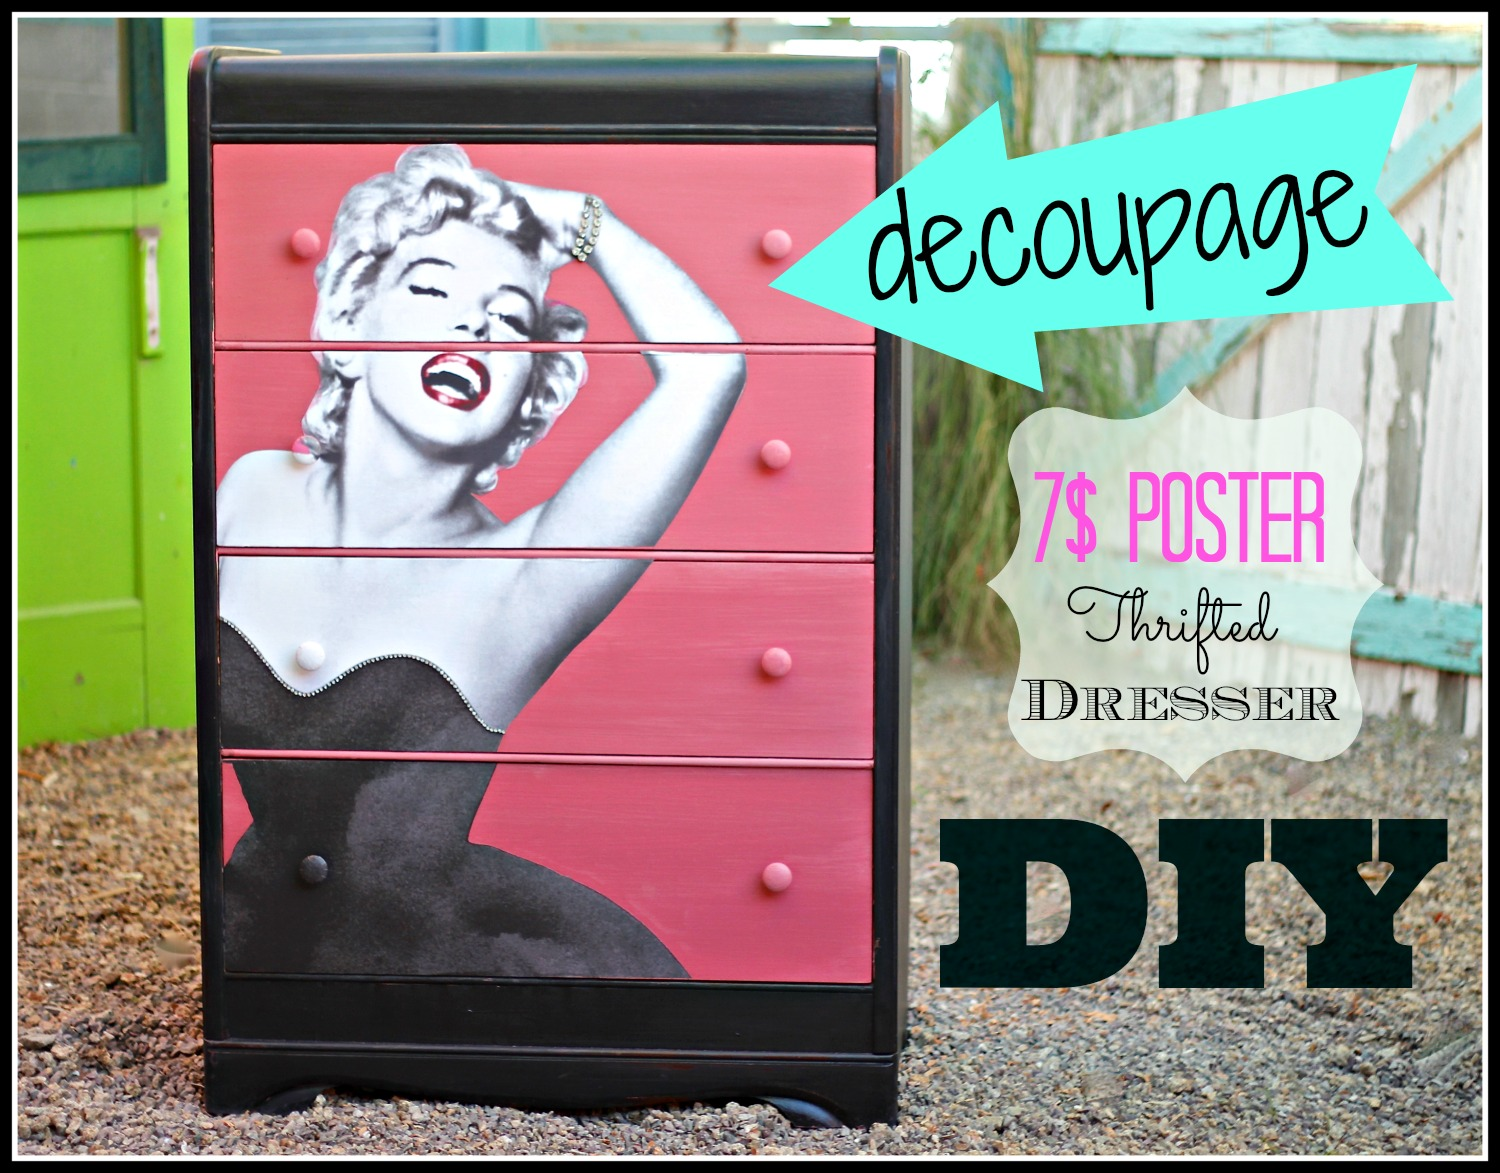 Decoupage dresser with a poster of Marilyn Monroe